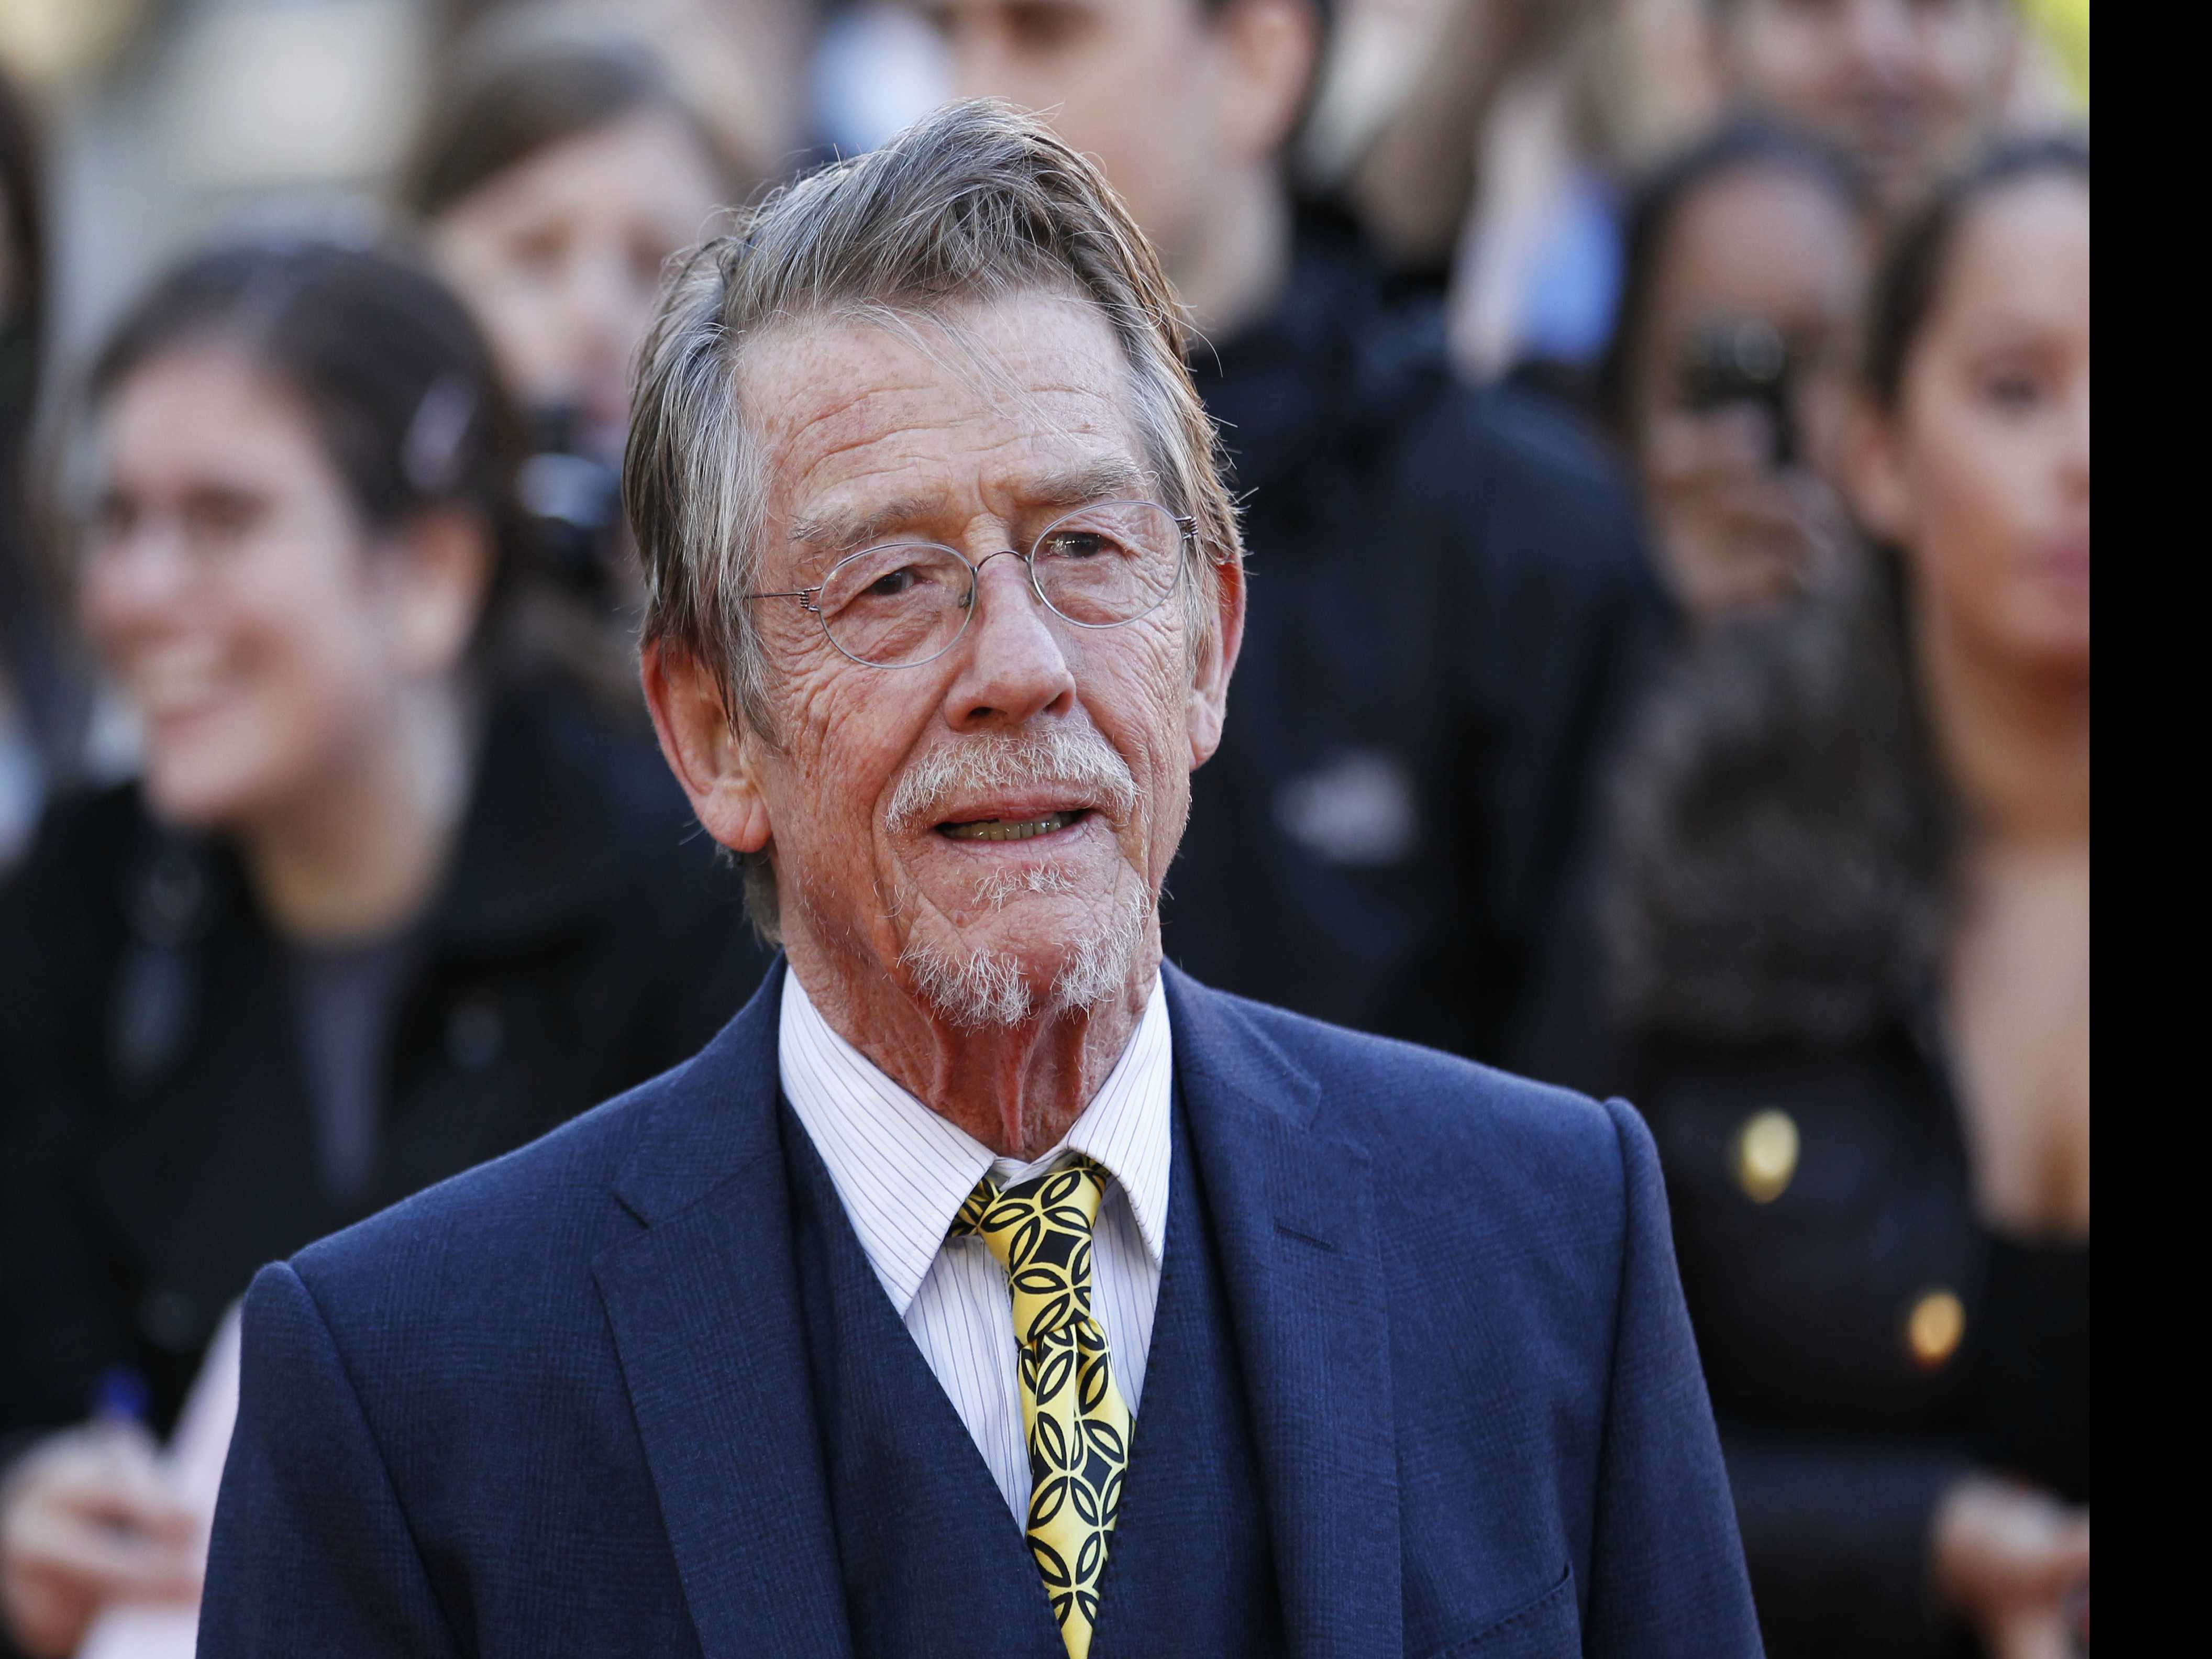 'A Truly Magnificent Talent:' Actor John Hurt Dies At 77